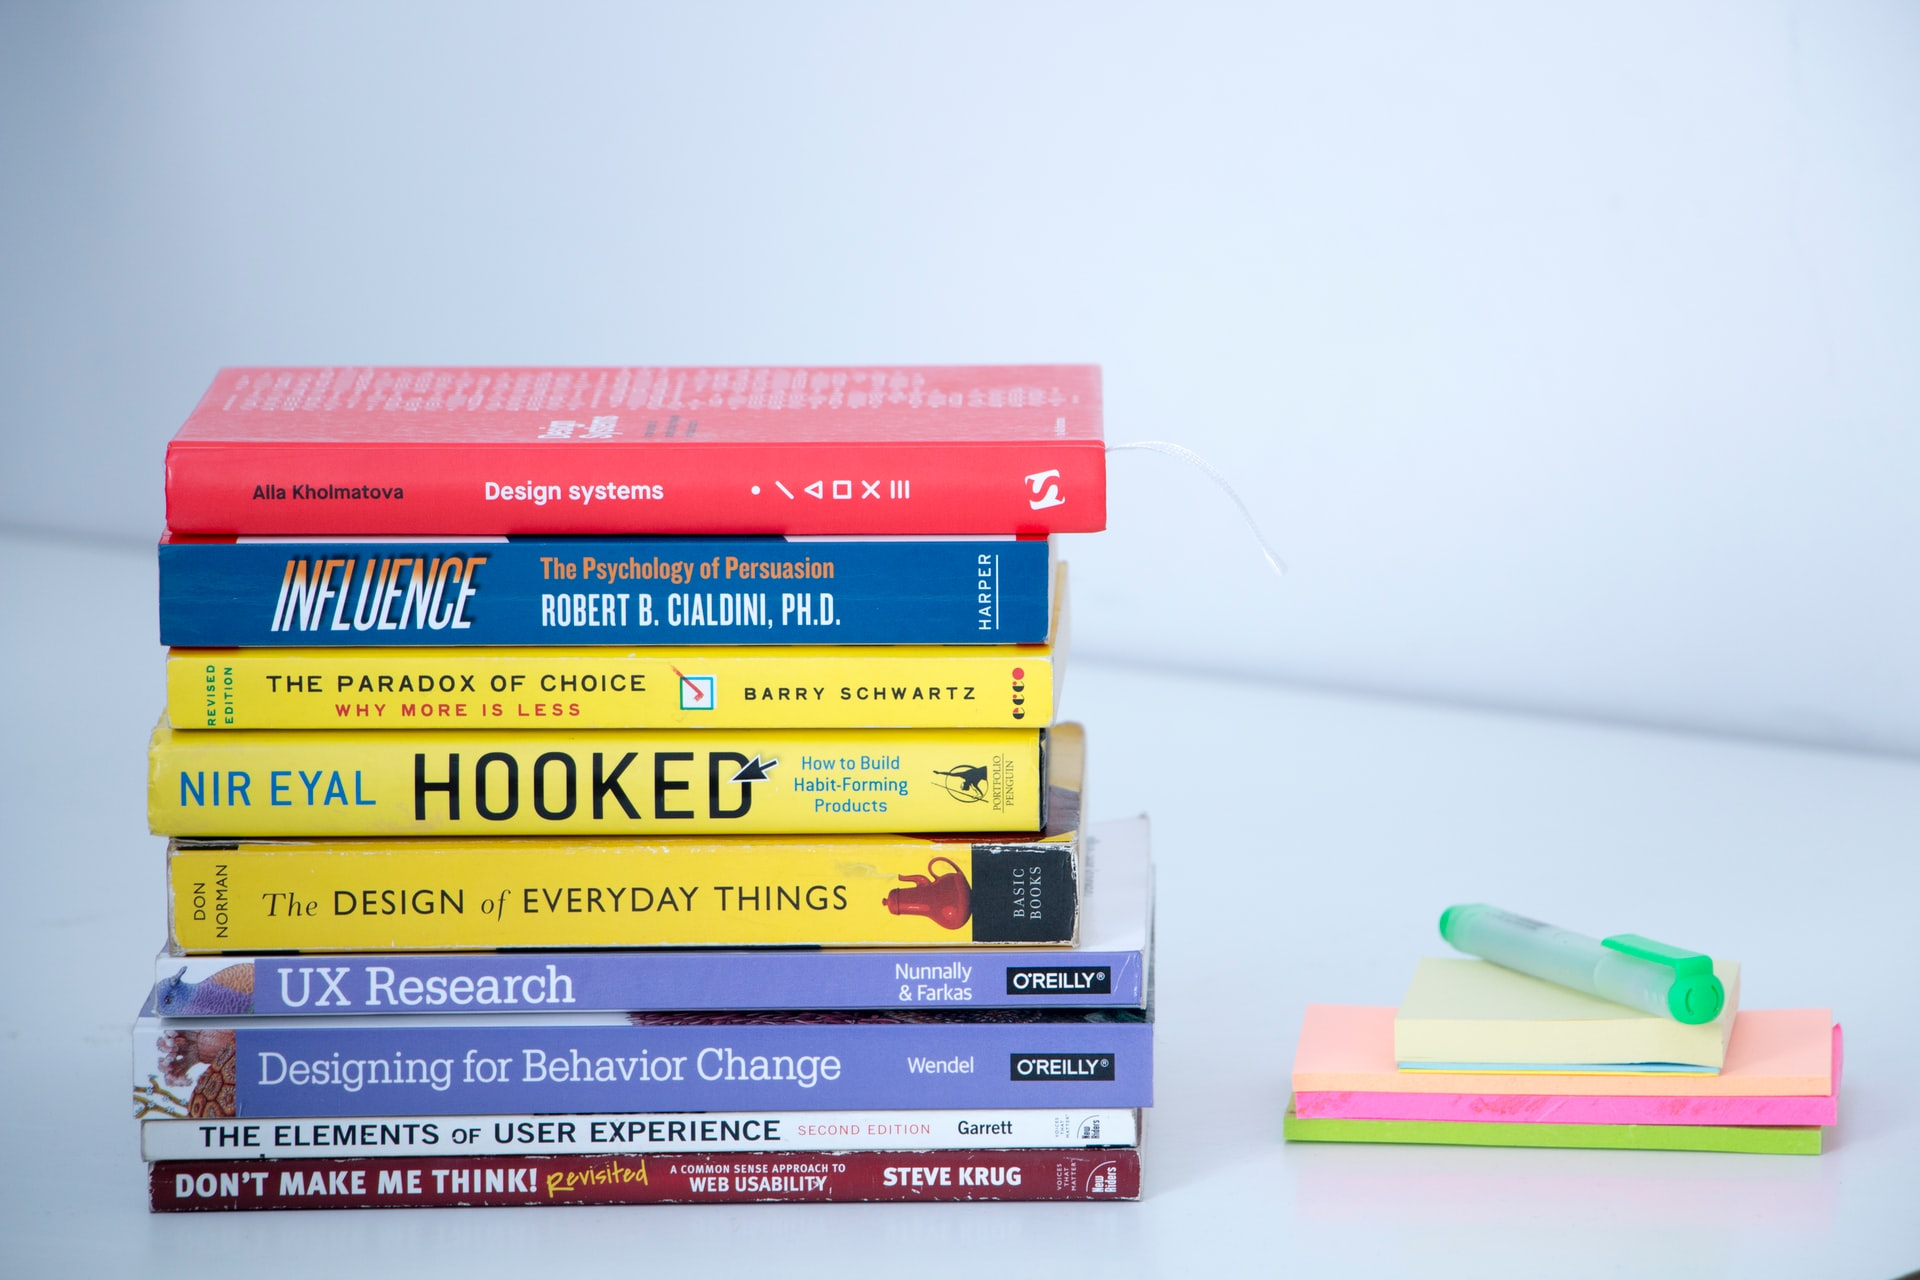 A pile of books about design, usability, and user experience.